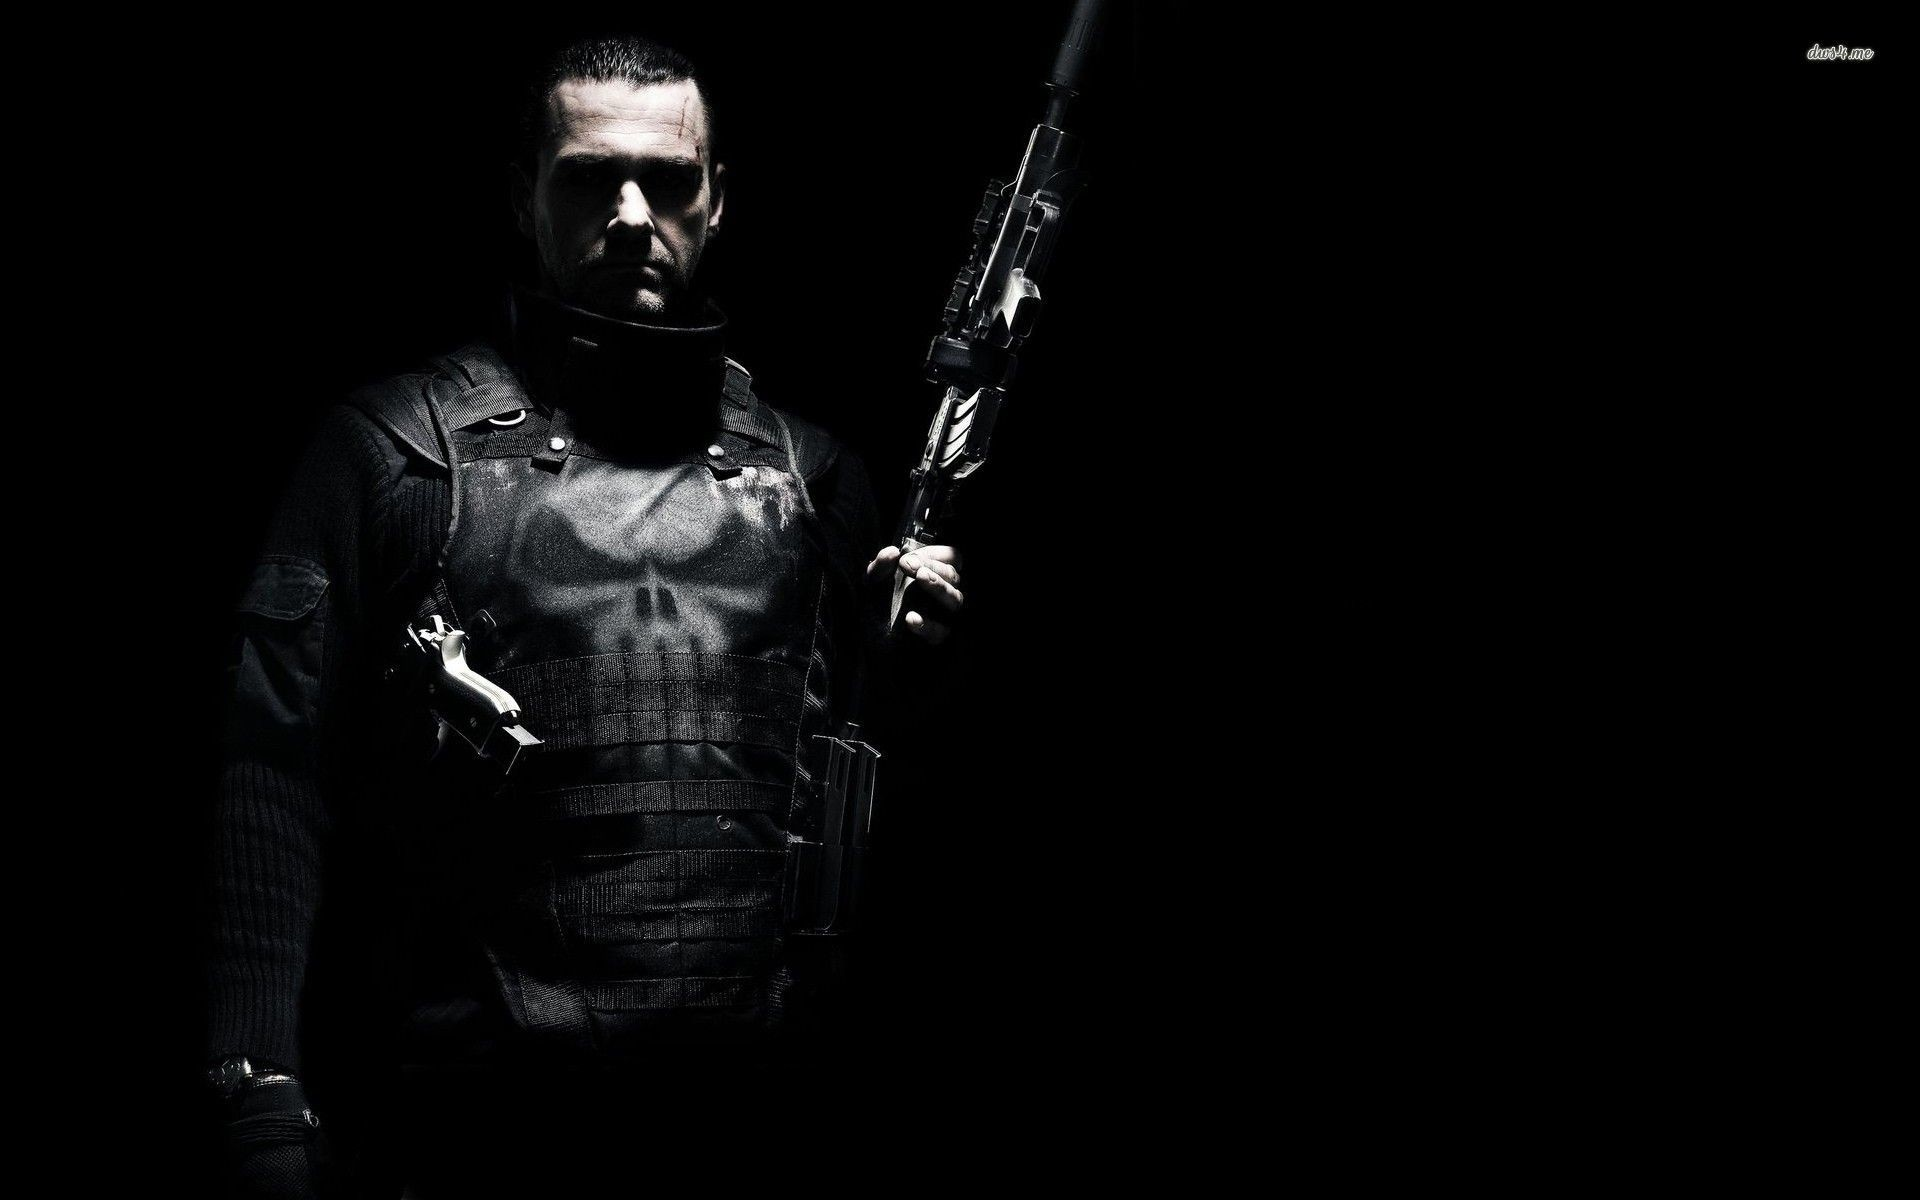 1920x1200 Punisher HD WallpapersBackgrounds For Free Download BsnSCB